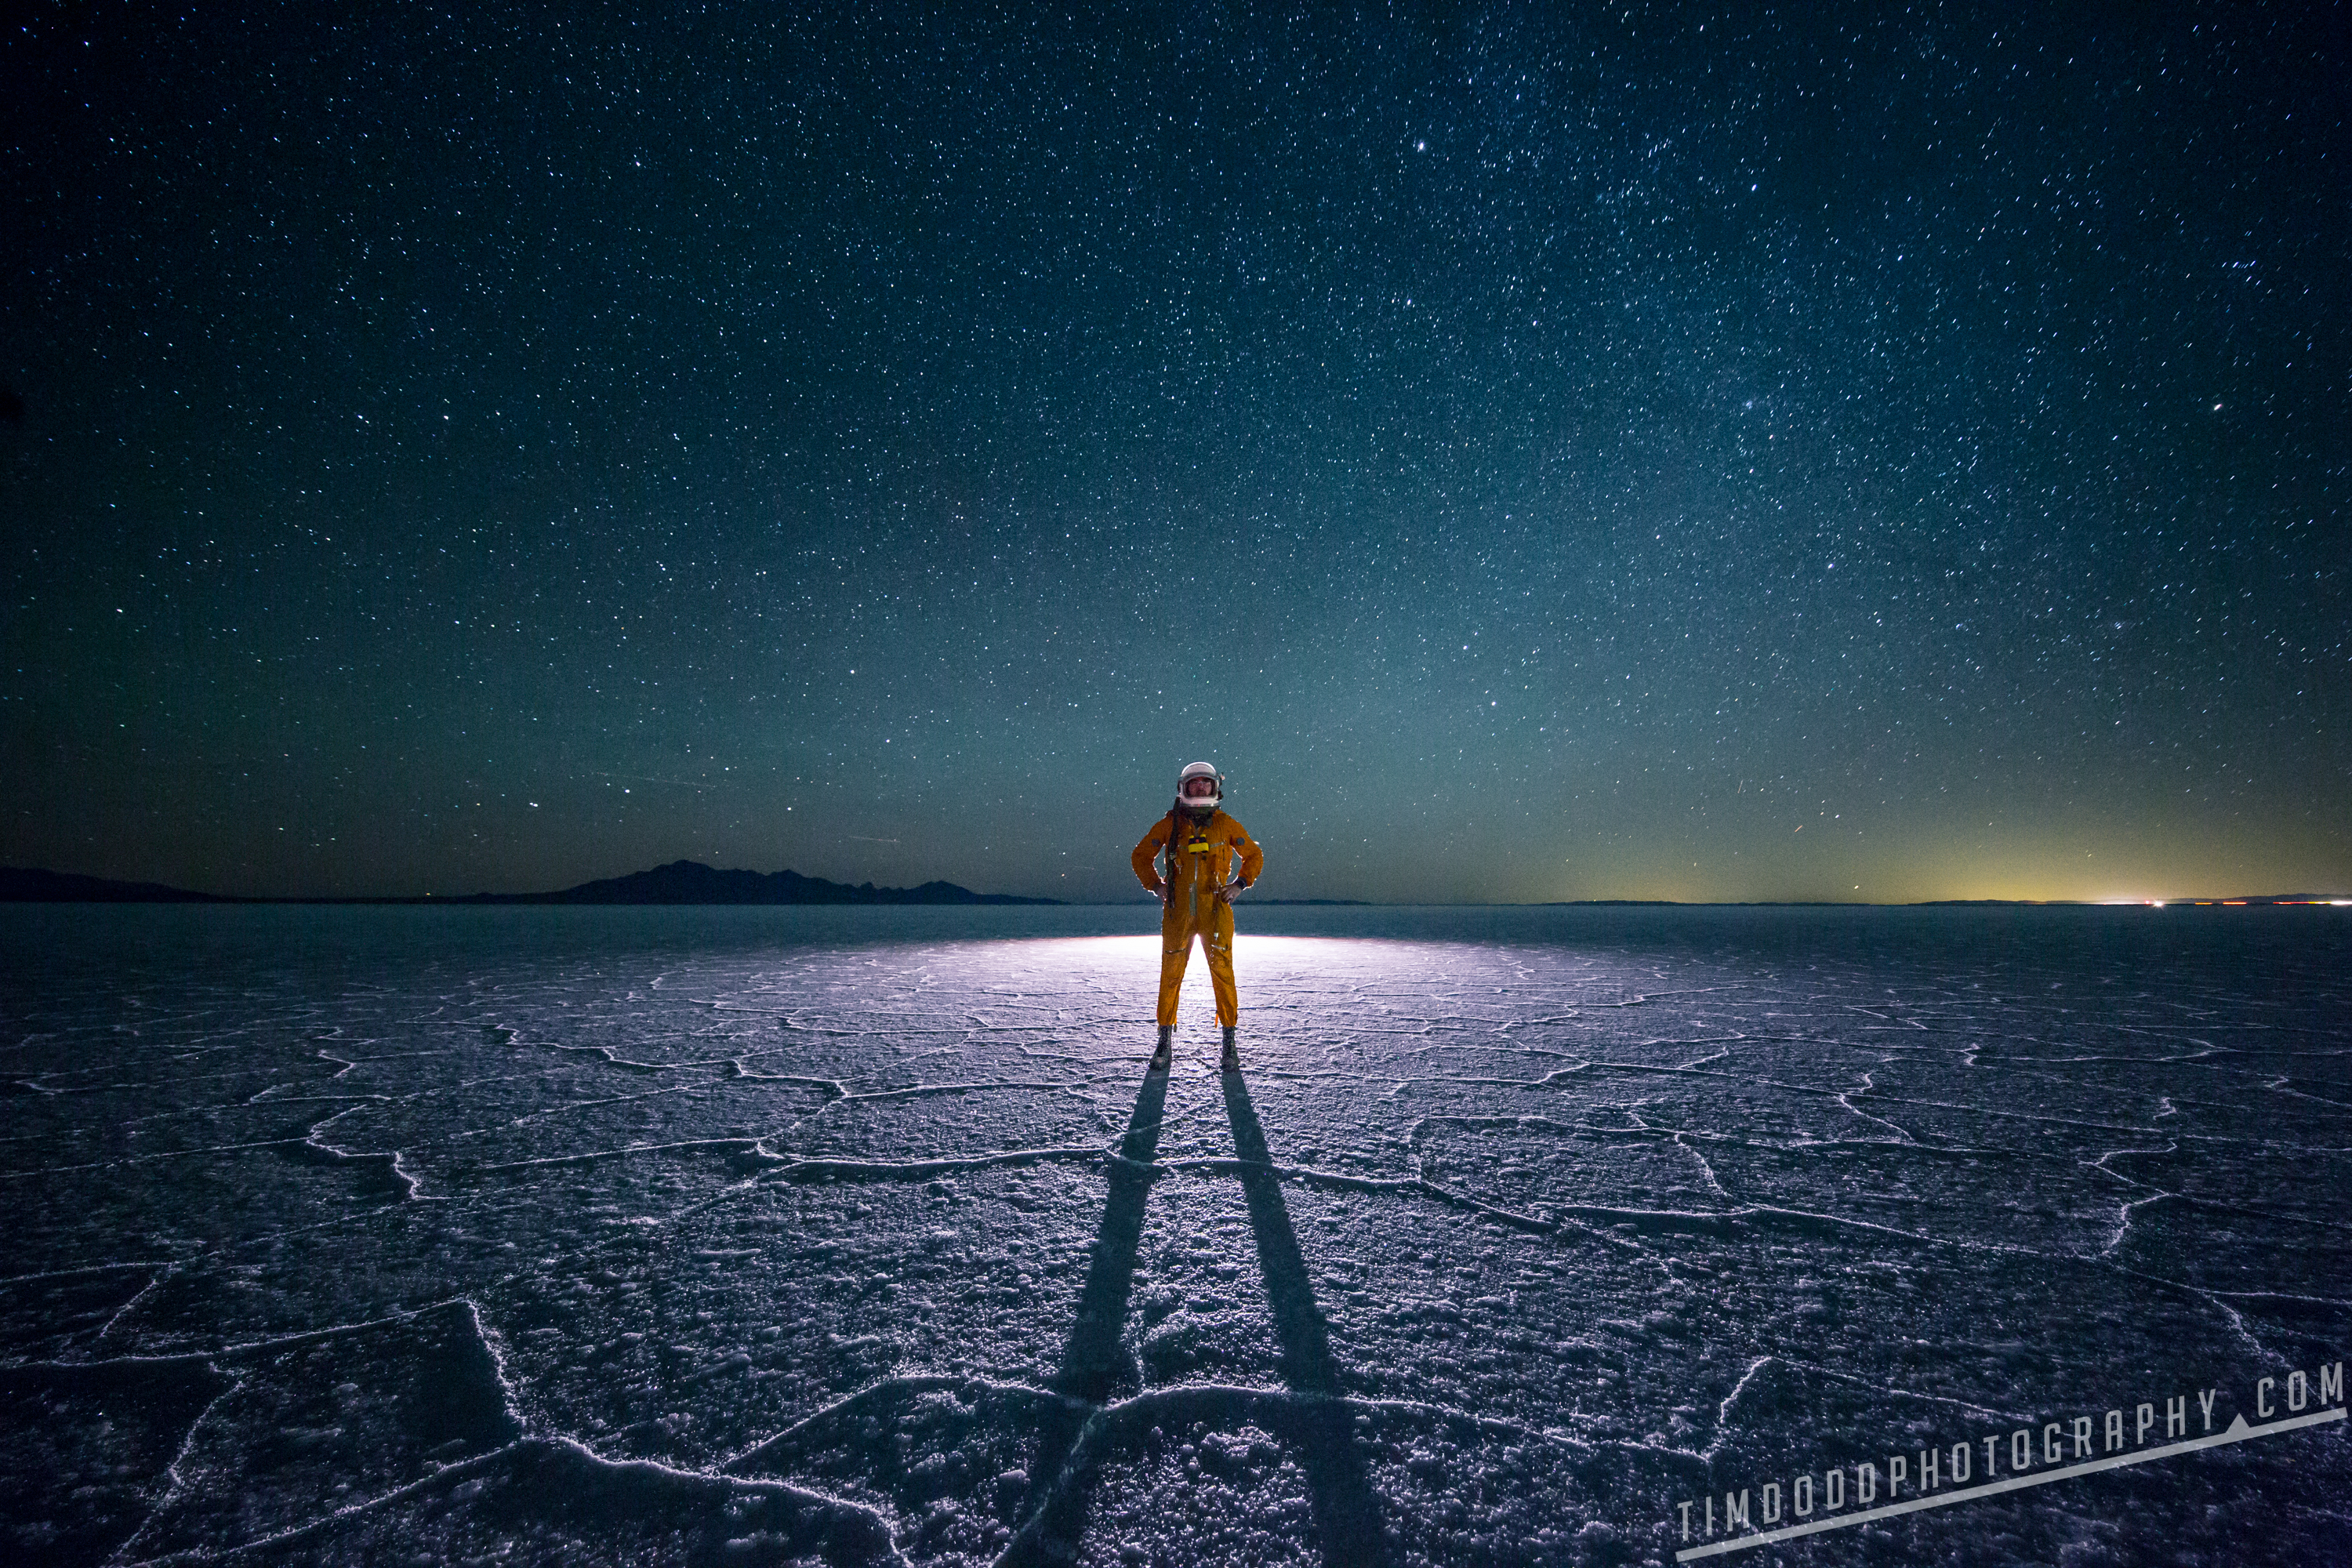 Bonneville salt flats everyday astronaut space suit russian reflection flooded utah instagram night stars milky way galaxy astrophotography